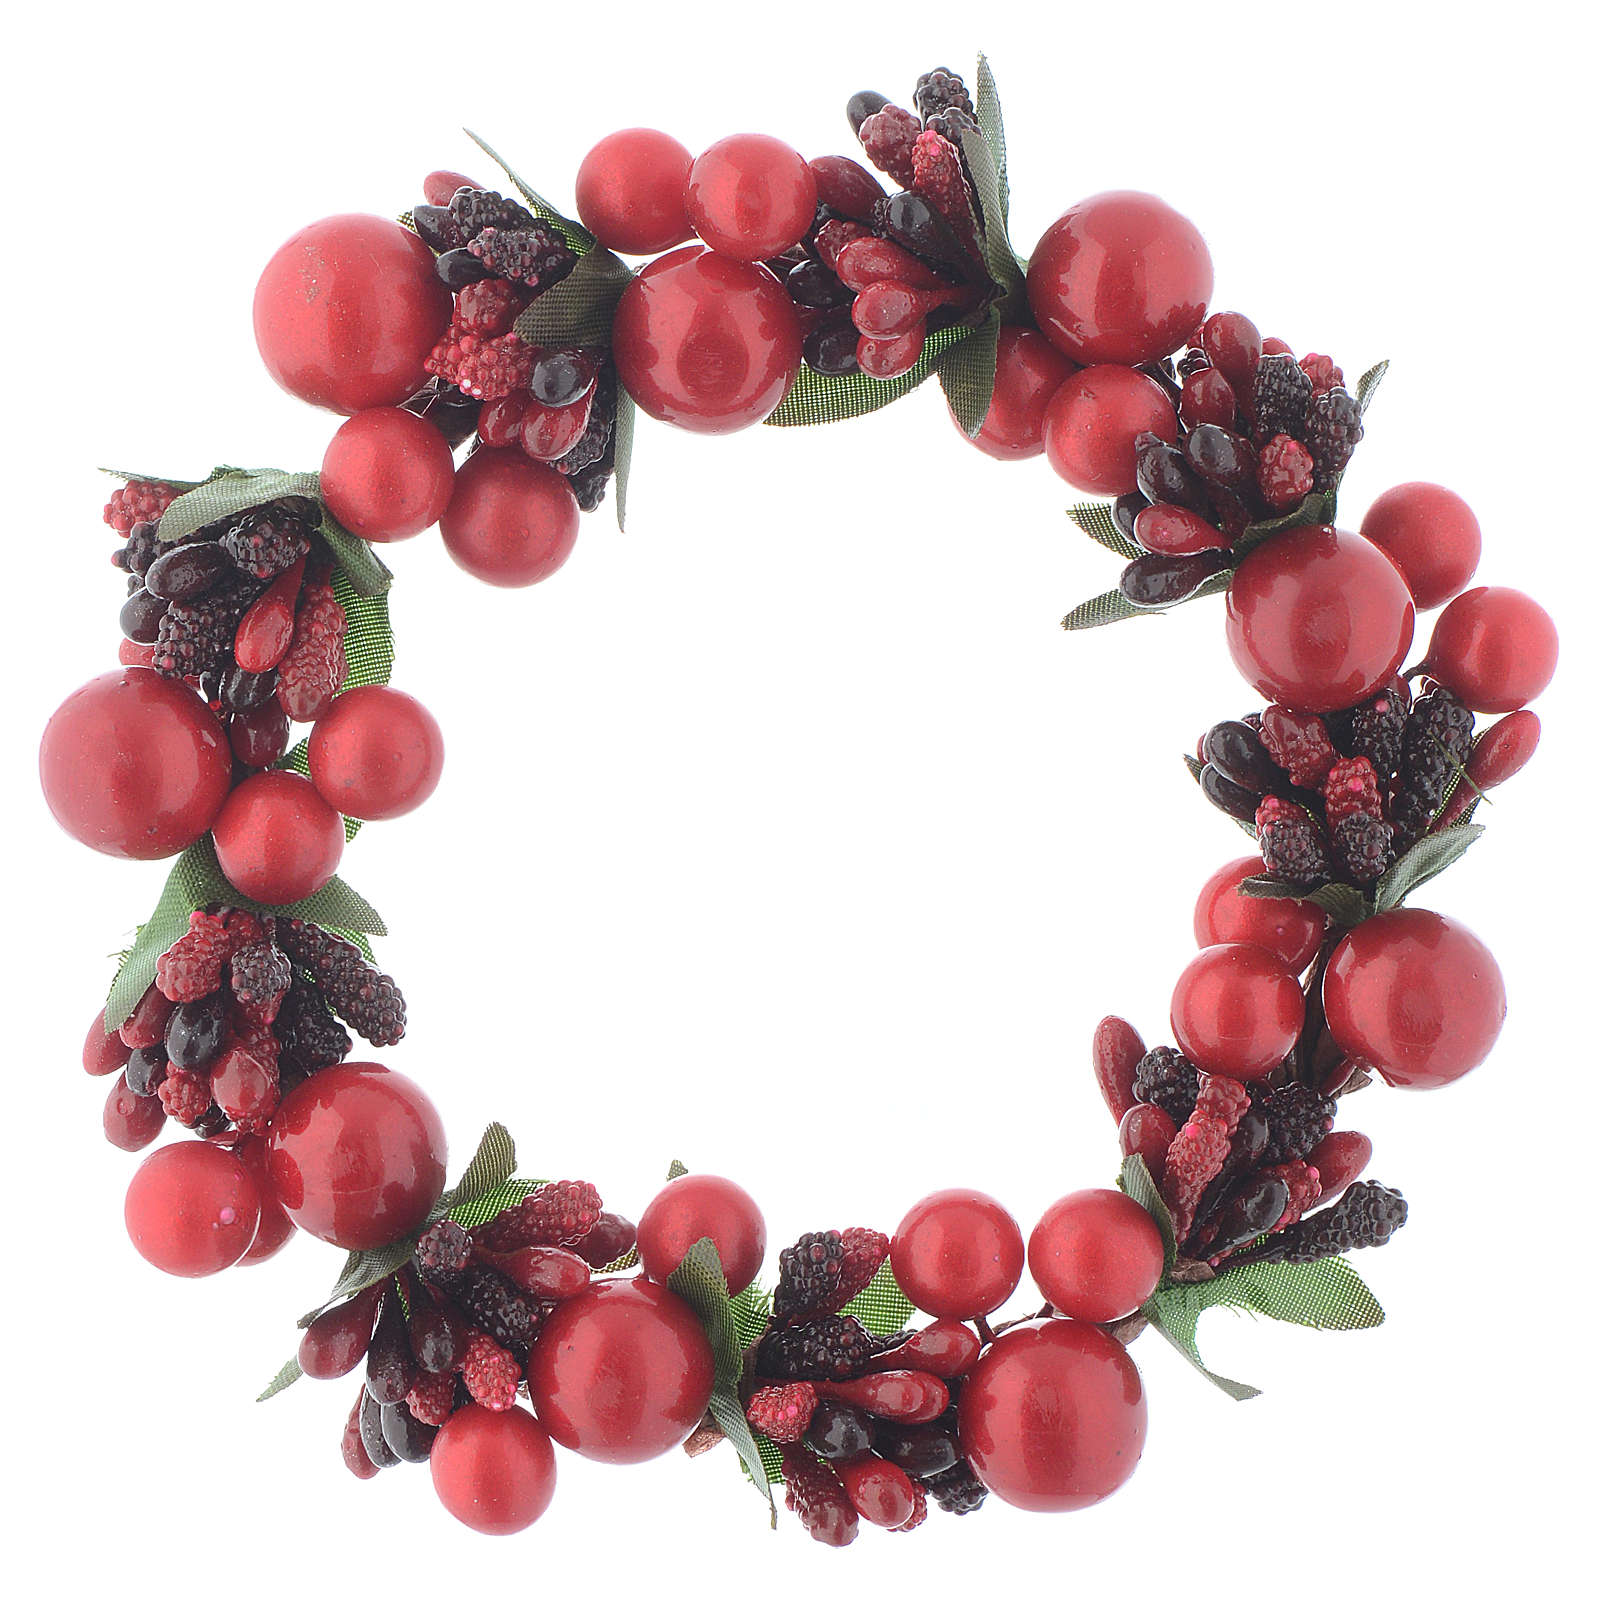 Christmas candle embellishment with red berries 8cm 3